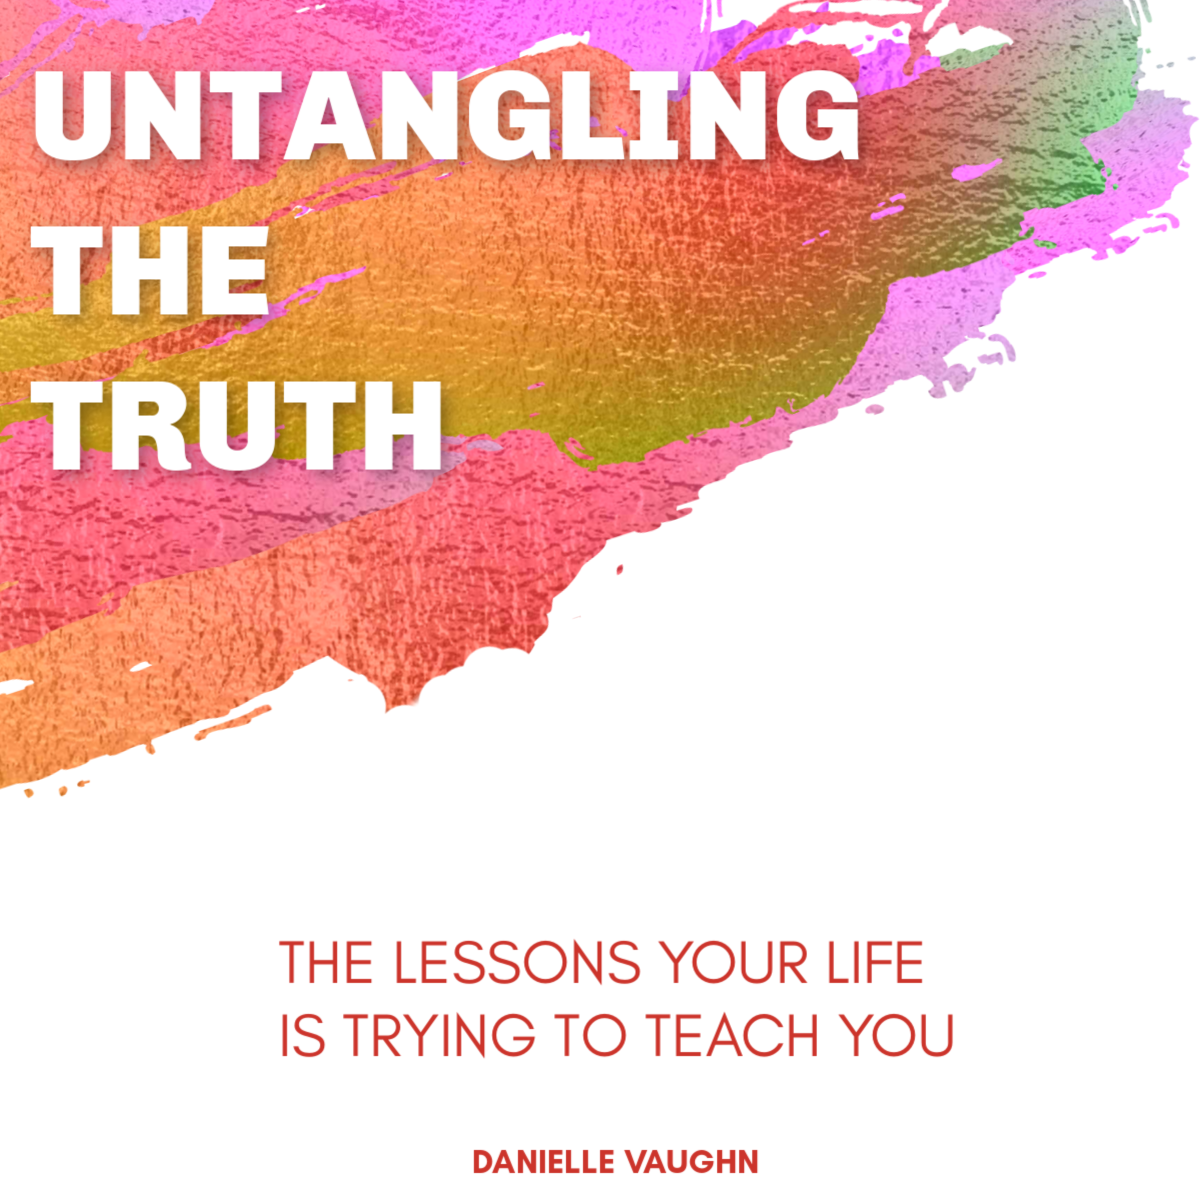 untangling the truth-3